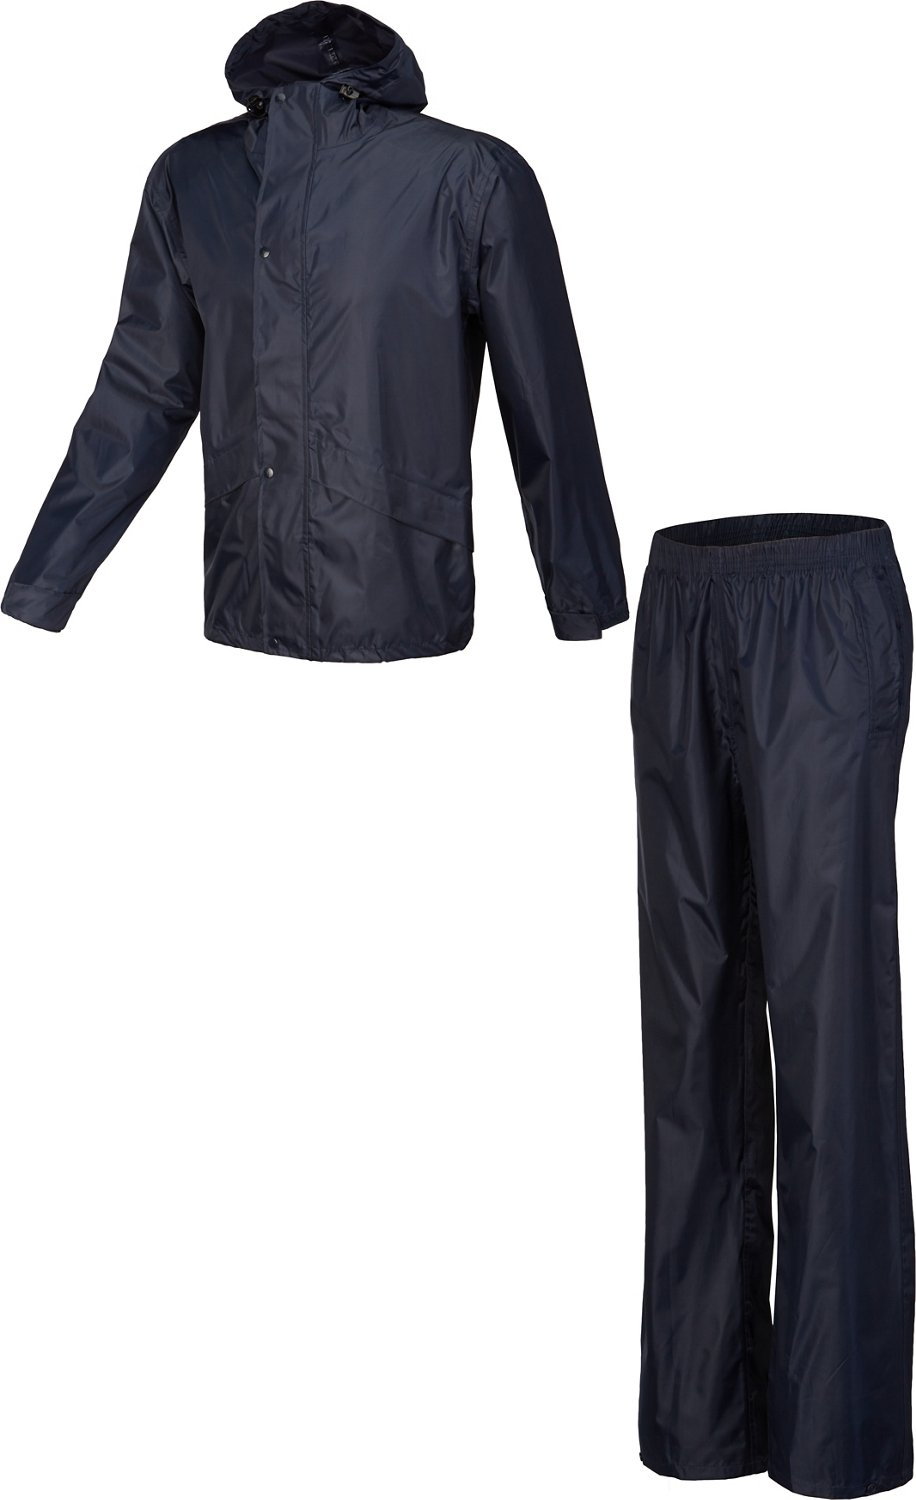 a4d9bda06 Display product reviews for Academy Sports + Outdoors Men's Rain Suit